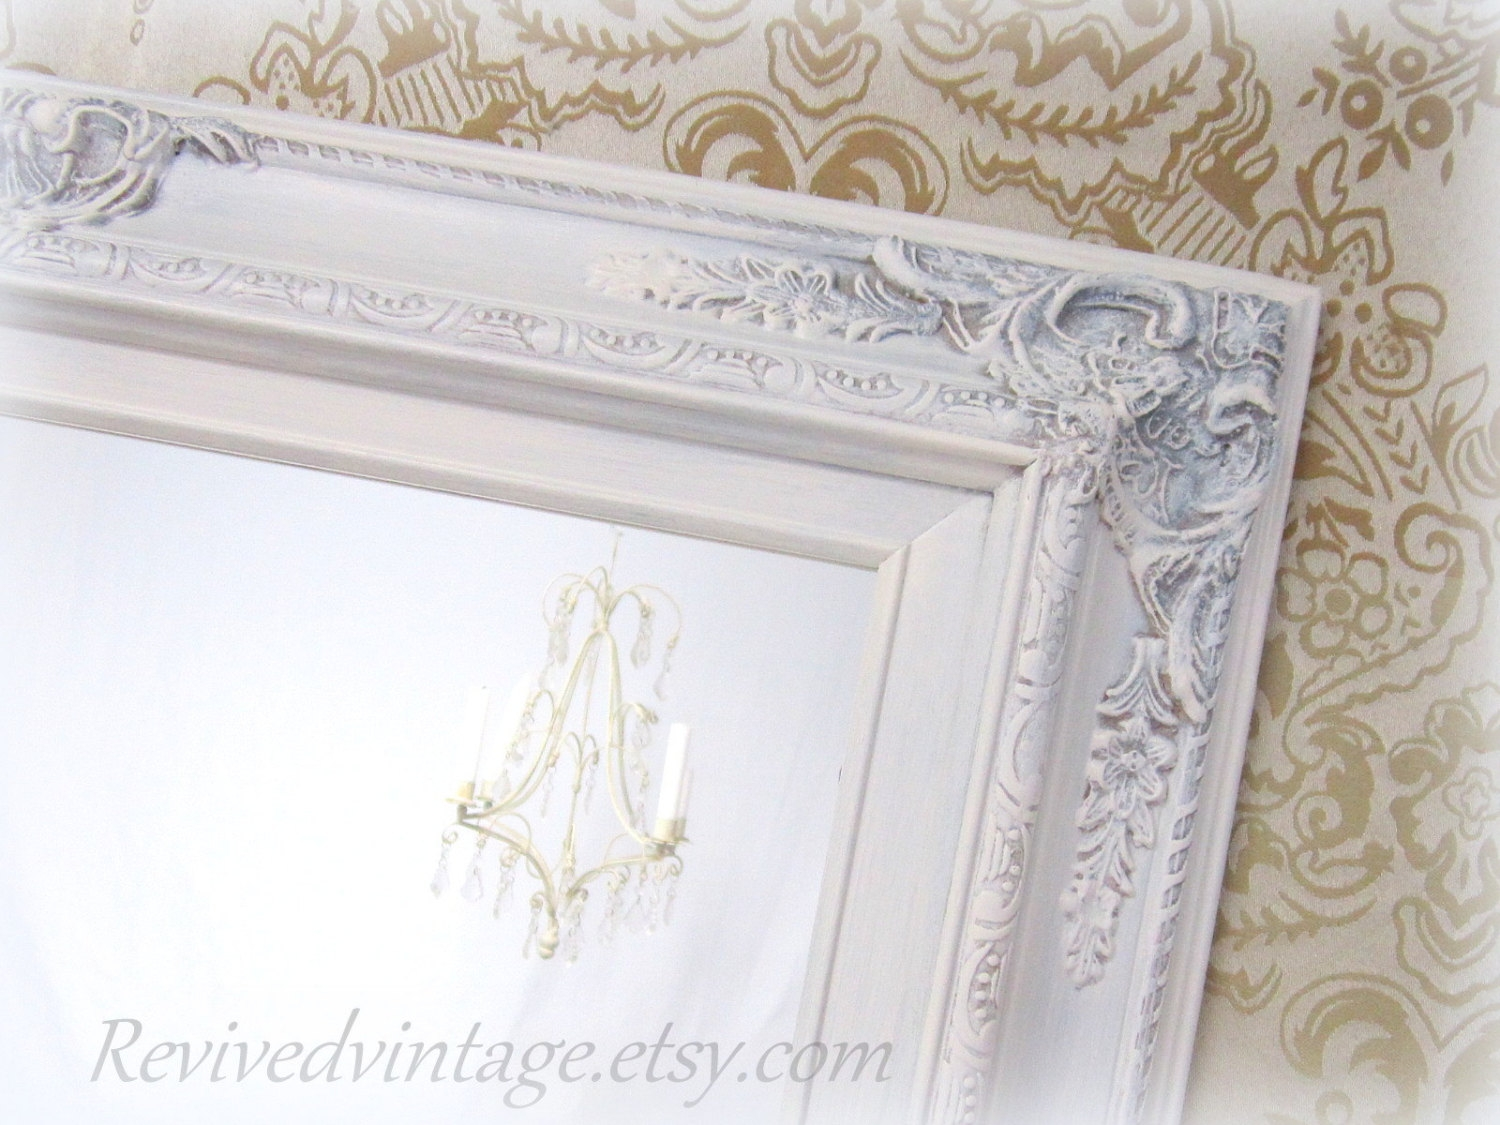 Large Mirror Etsy Regarding Shabby Chic Mirrors For Sale (Image 9 of 15)